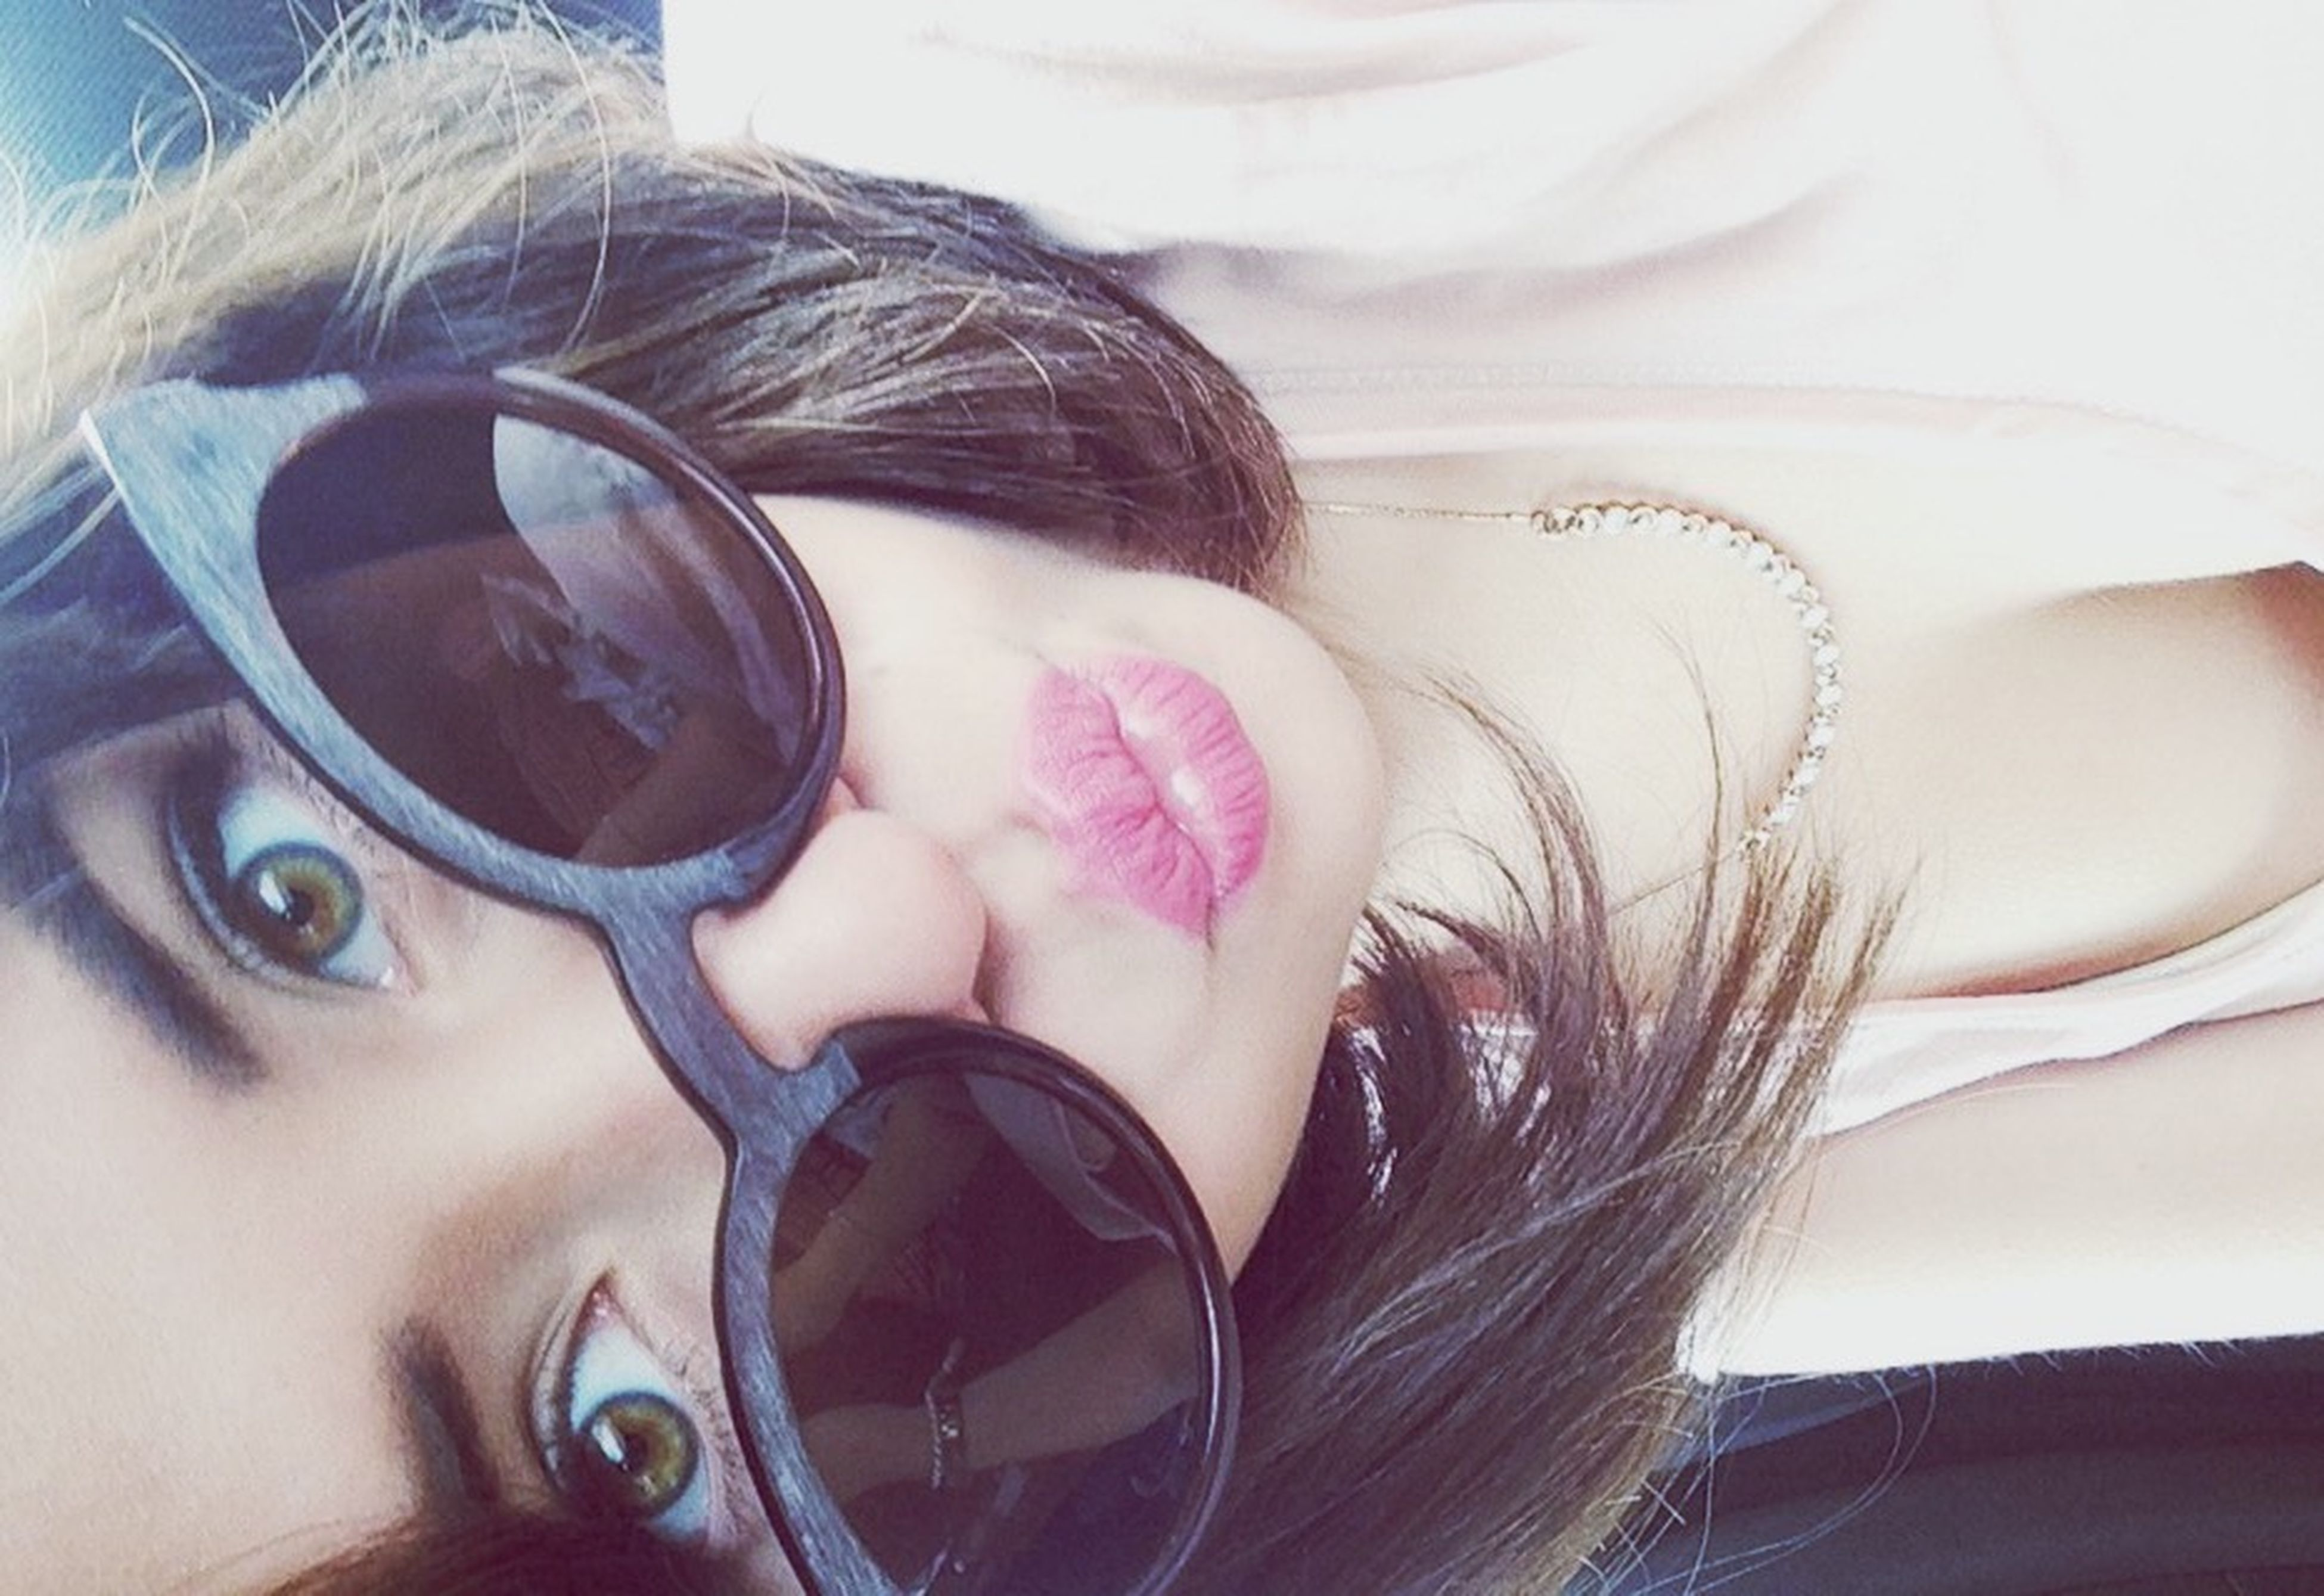 young women, young adult, lifestyles, headshot, person, leisure activity, close-up, sunglasses, long hair, looking at camera, portrait, front view, human face, femininity, focus on foreground